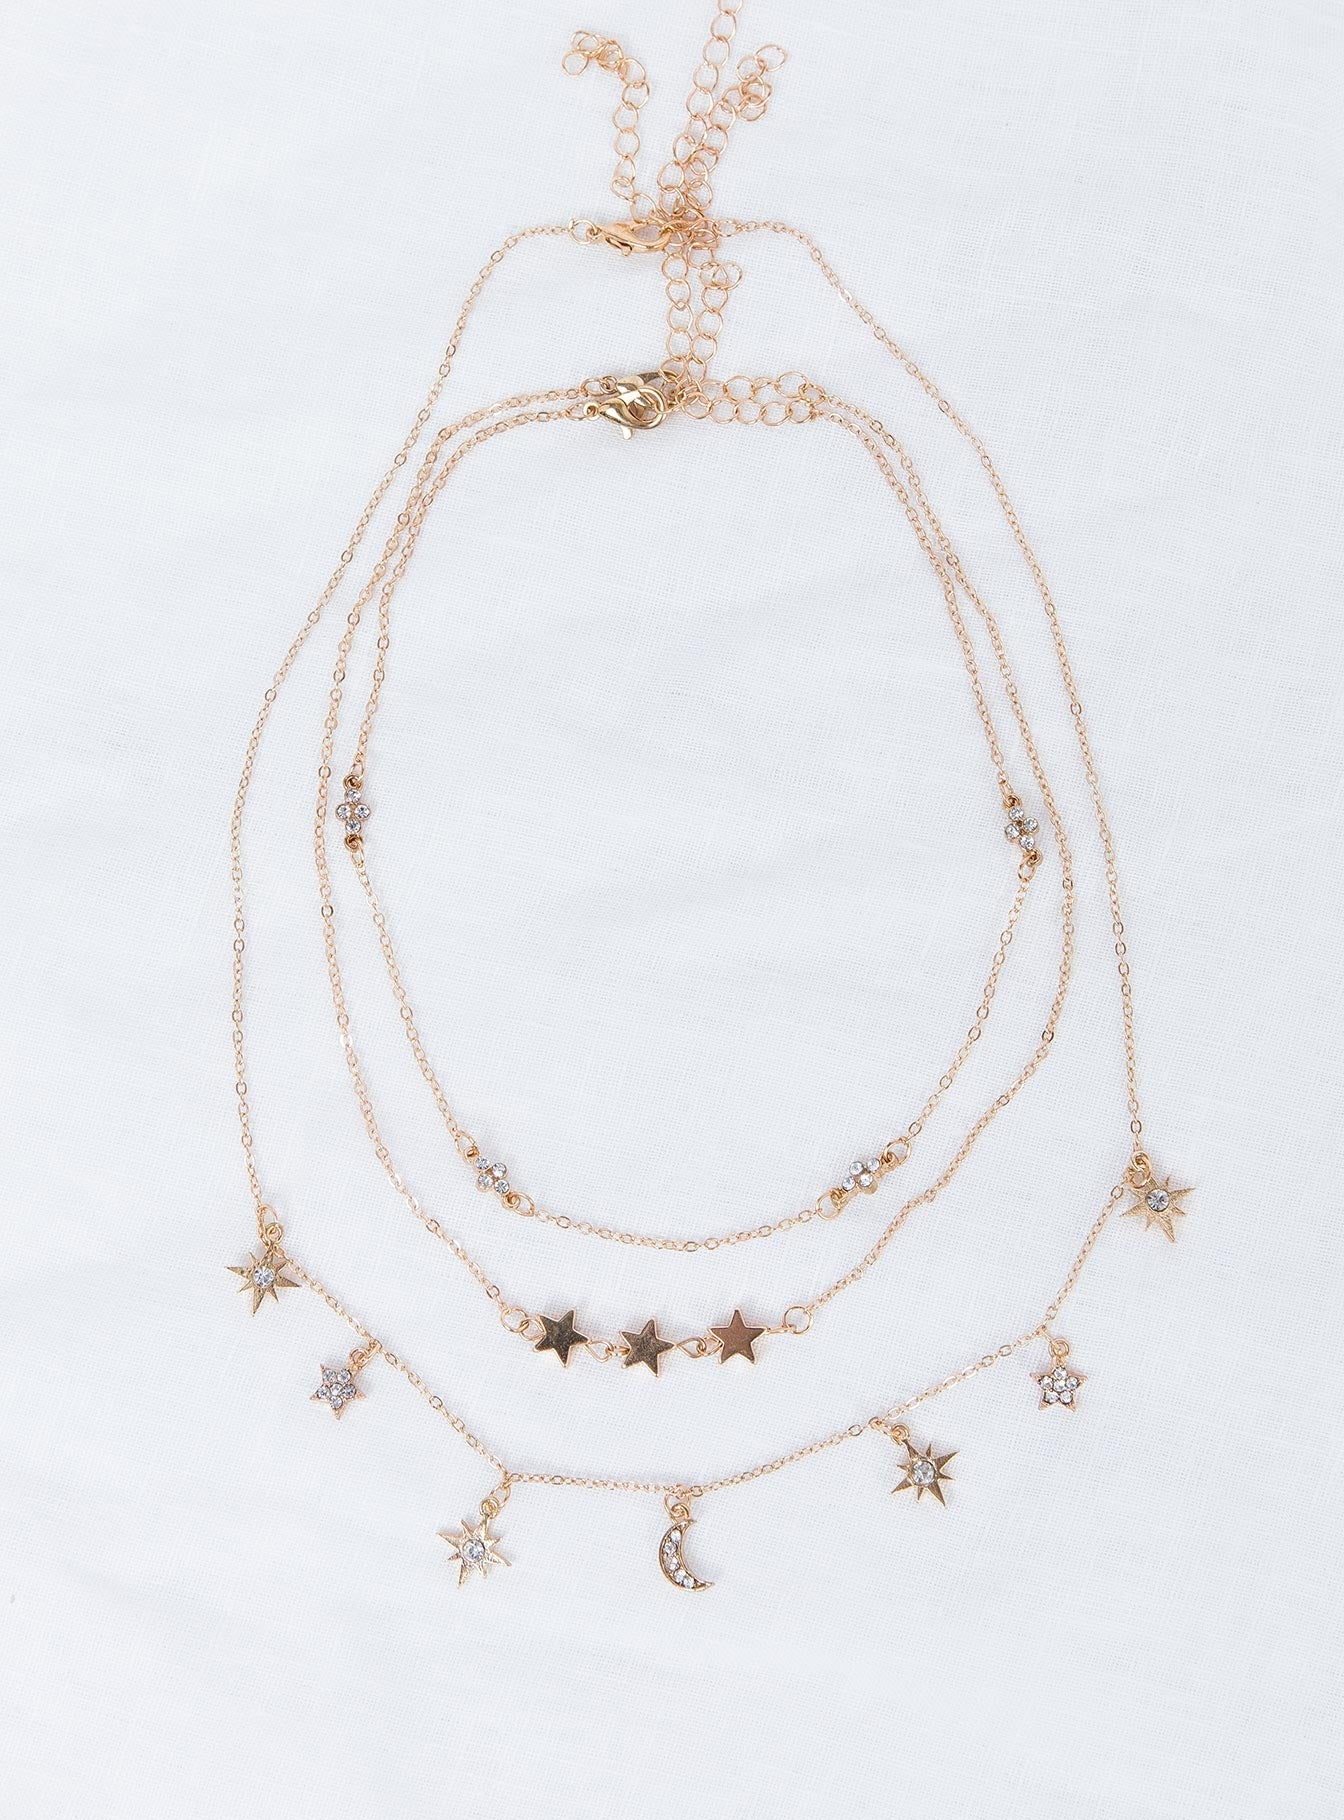 Star Love Layered Necklace Gold